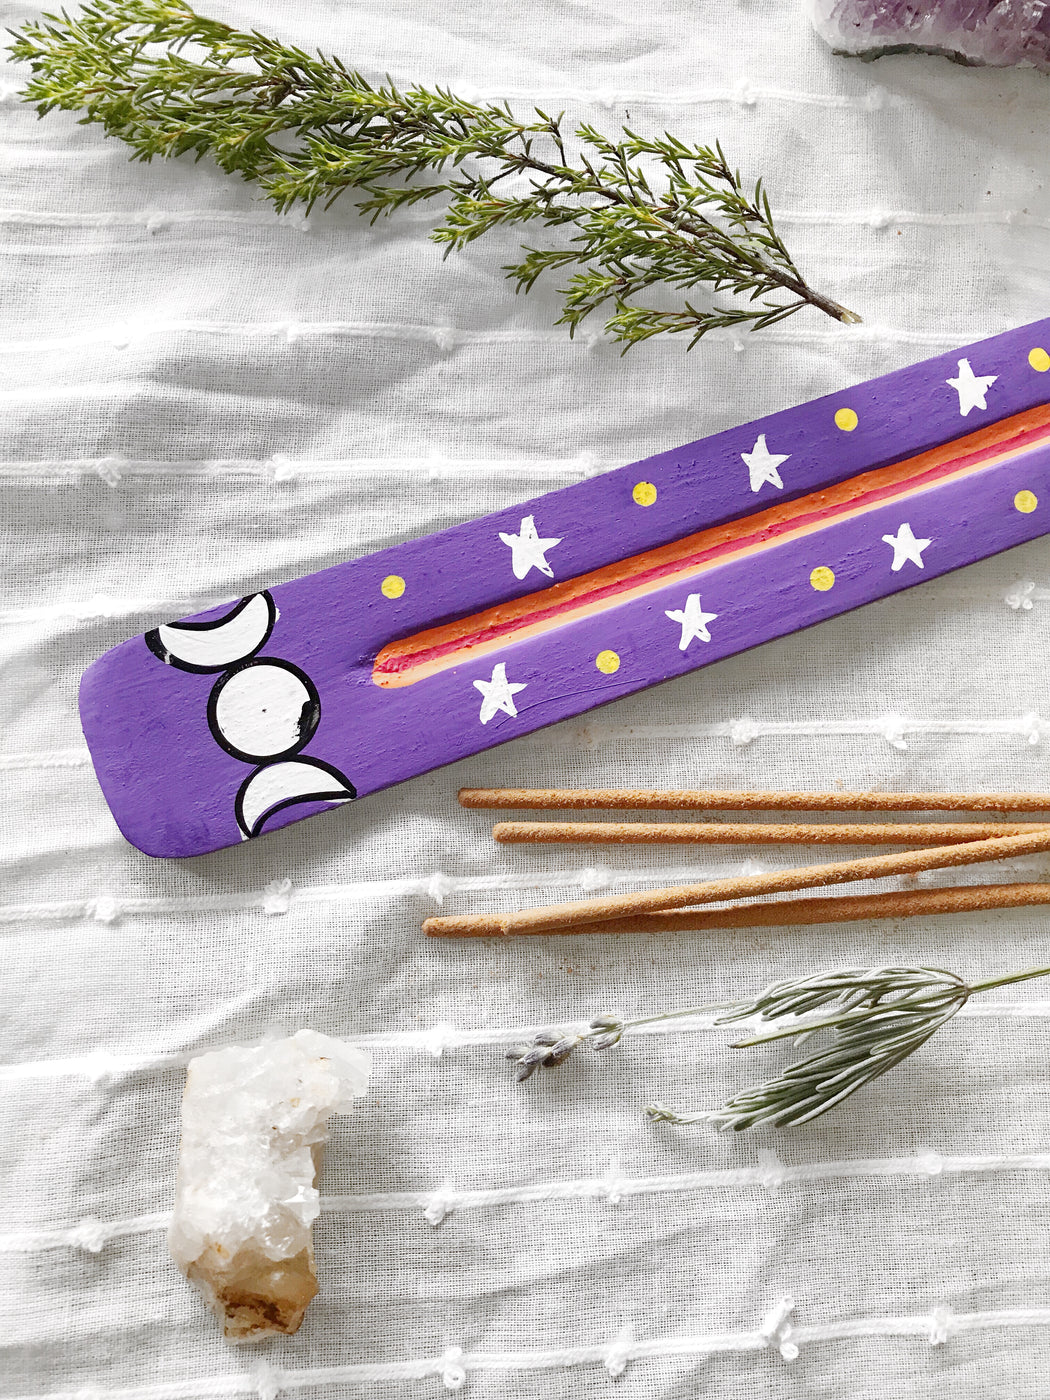 Wooden Purple Celestial Hand Painted Incense Burner